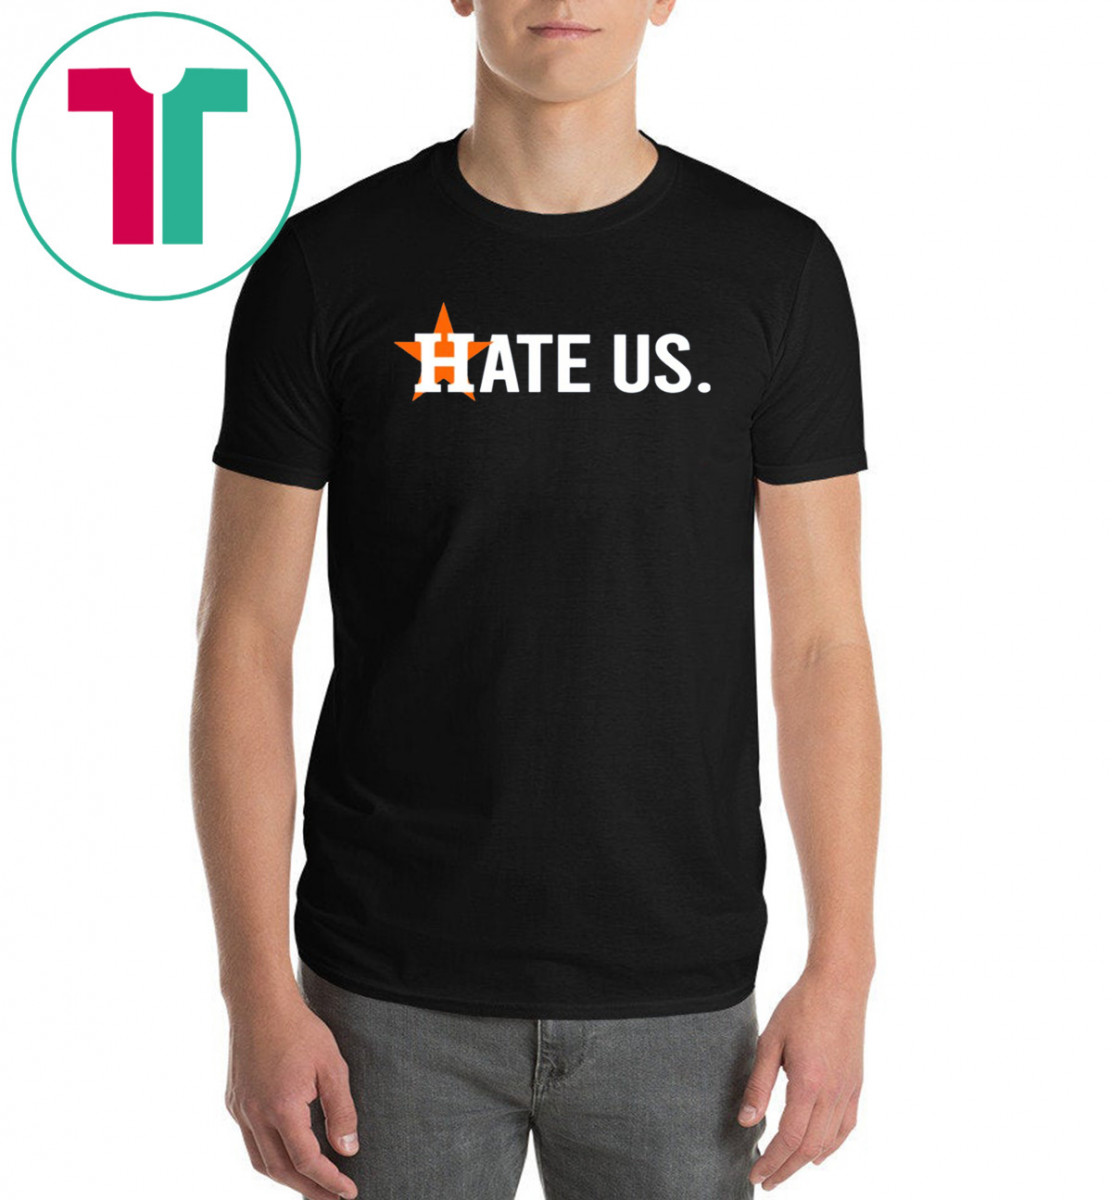 Astros Fans Putting Out 'Hate Us' T-Shirt